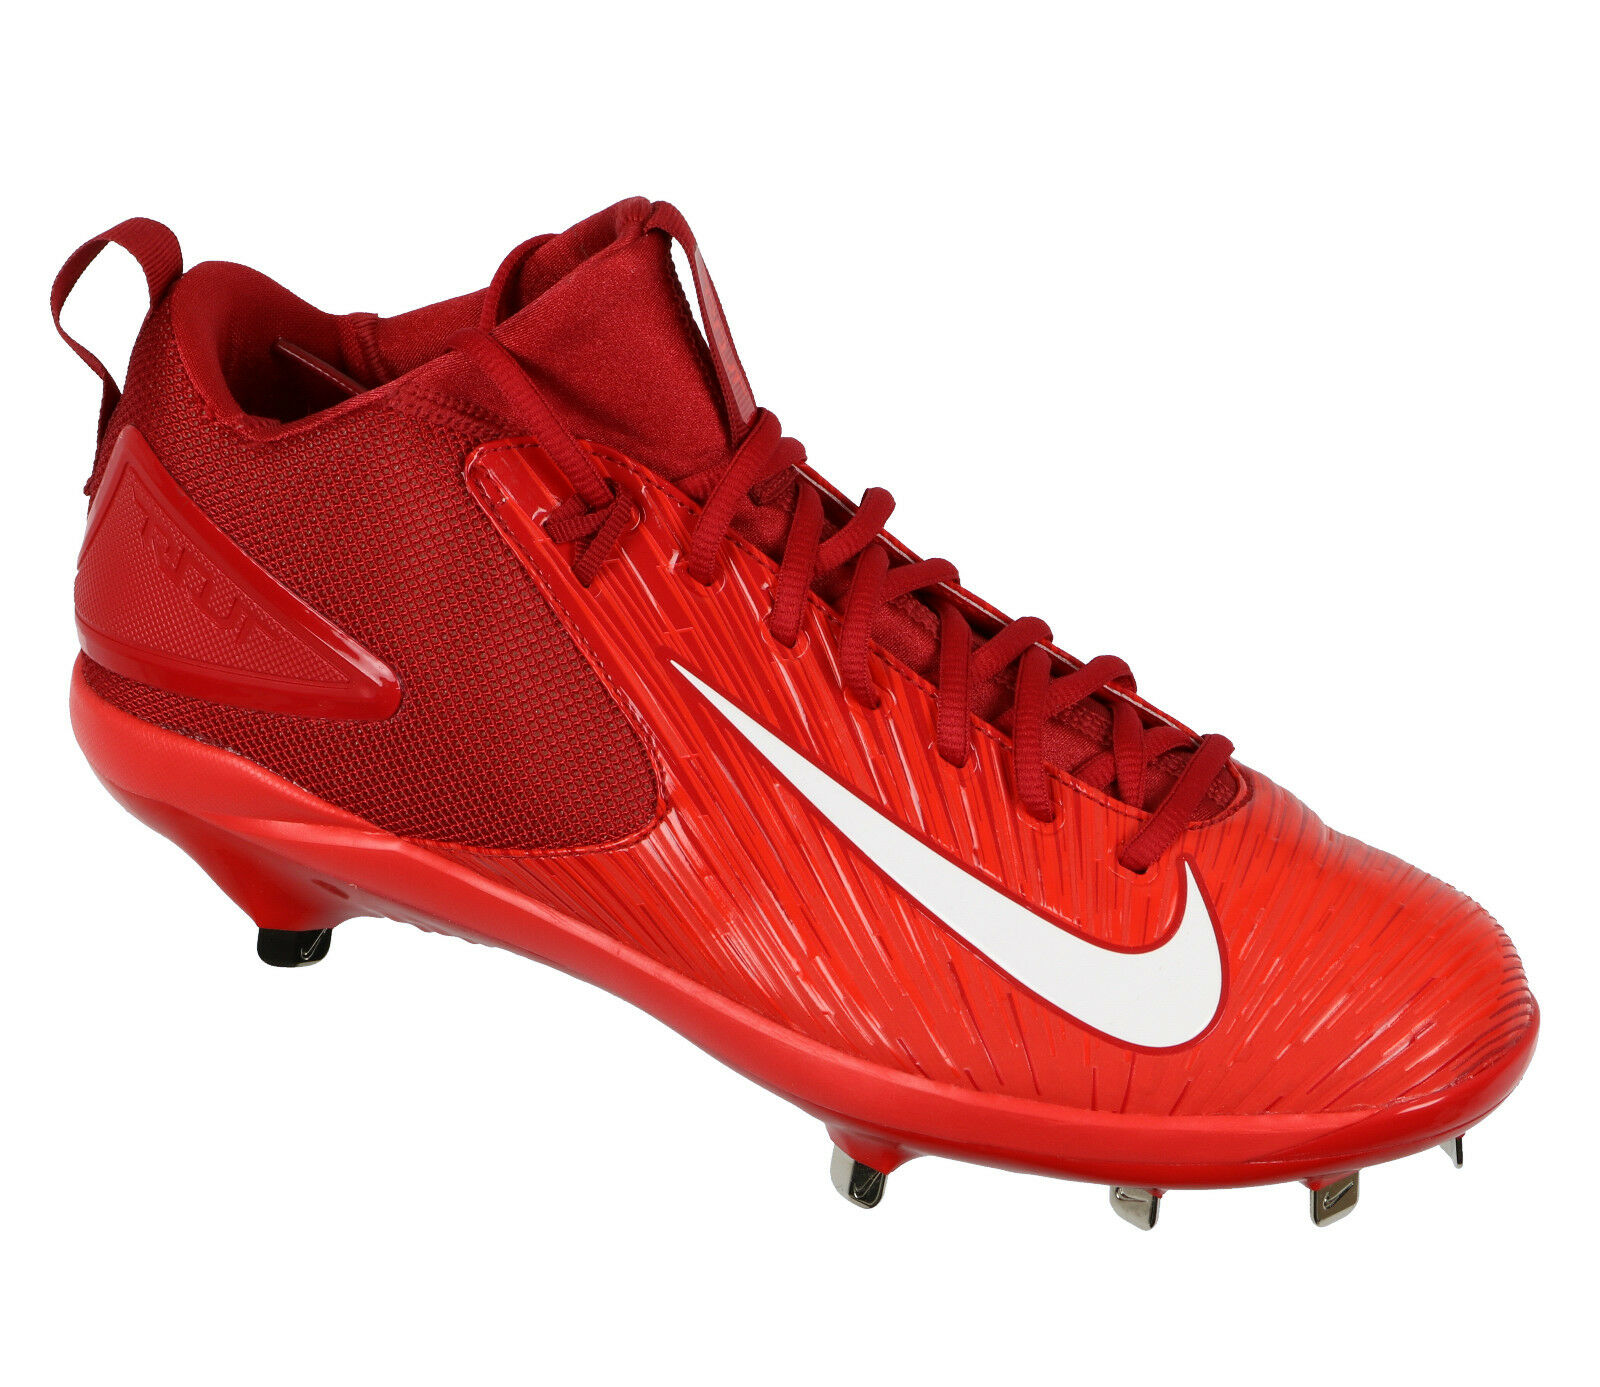 285a1f77fd NIKE Trout 3 Pro Low Metal Baseball Cleats sz 12 Red White MLB ...